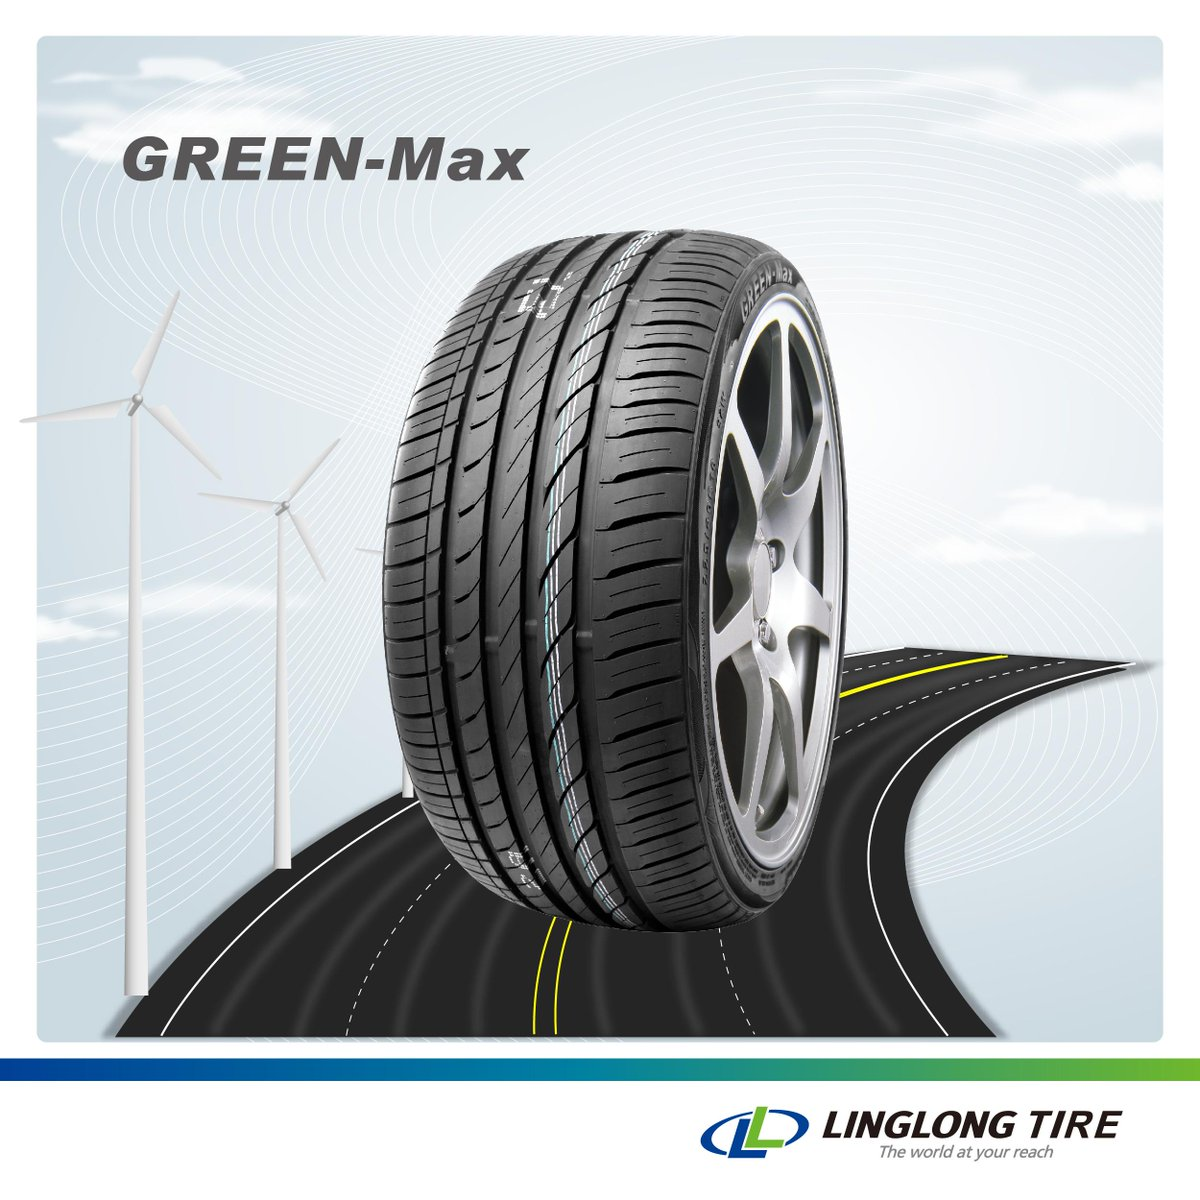 GREEN-Max Tire http://t.co/feaEiNYEcM